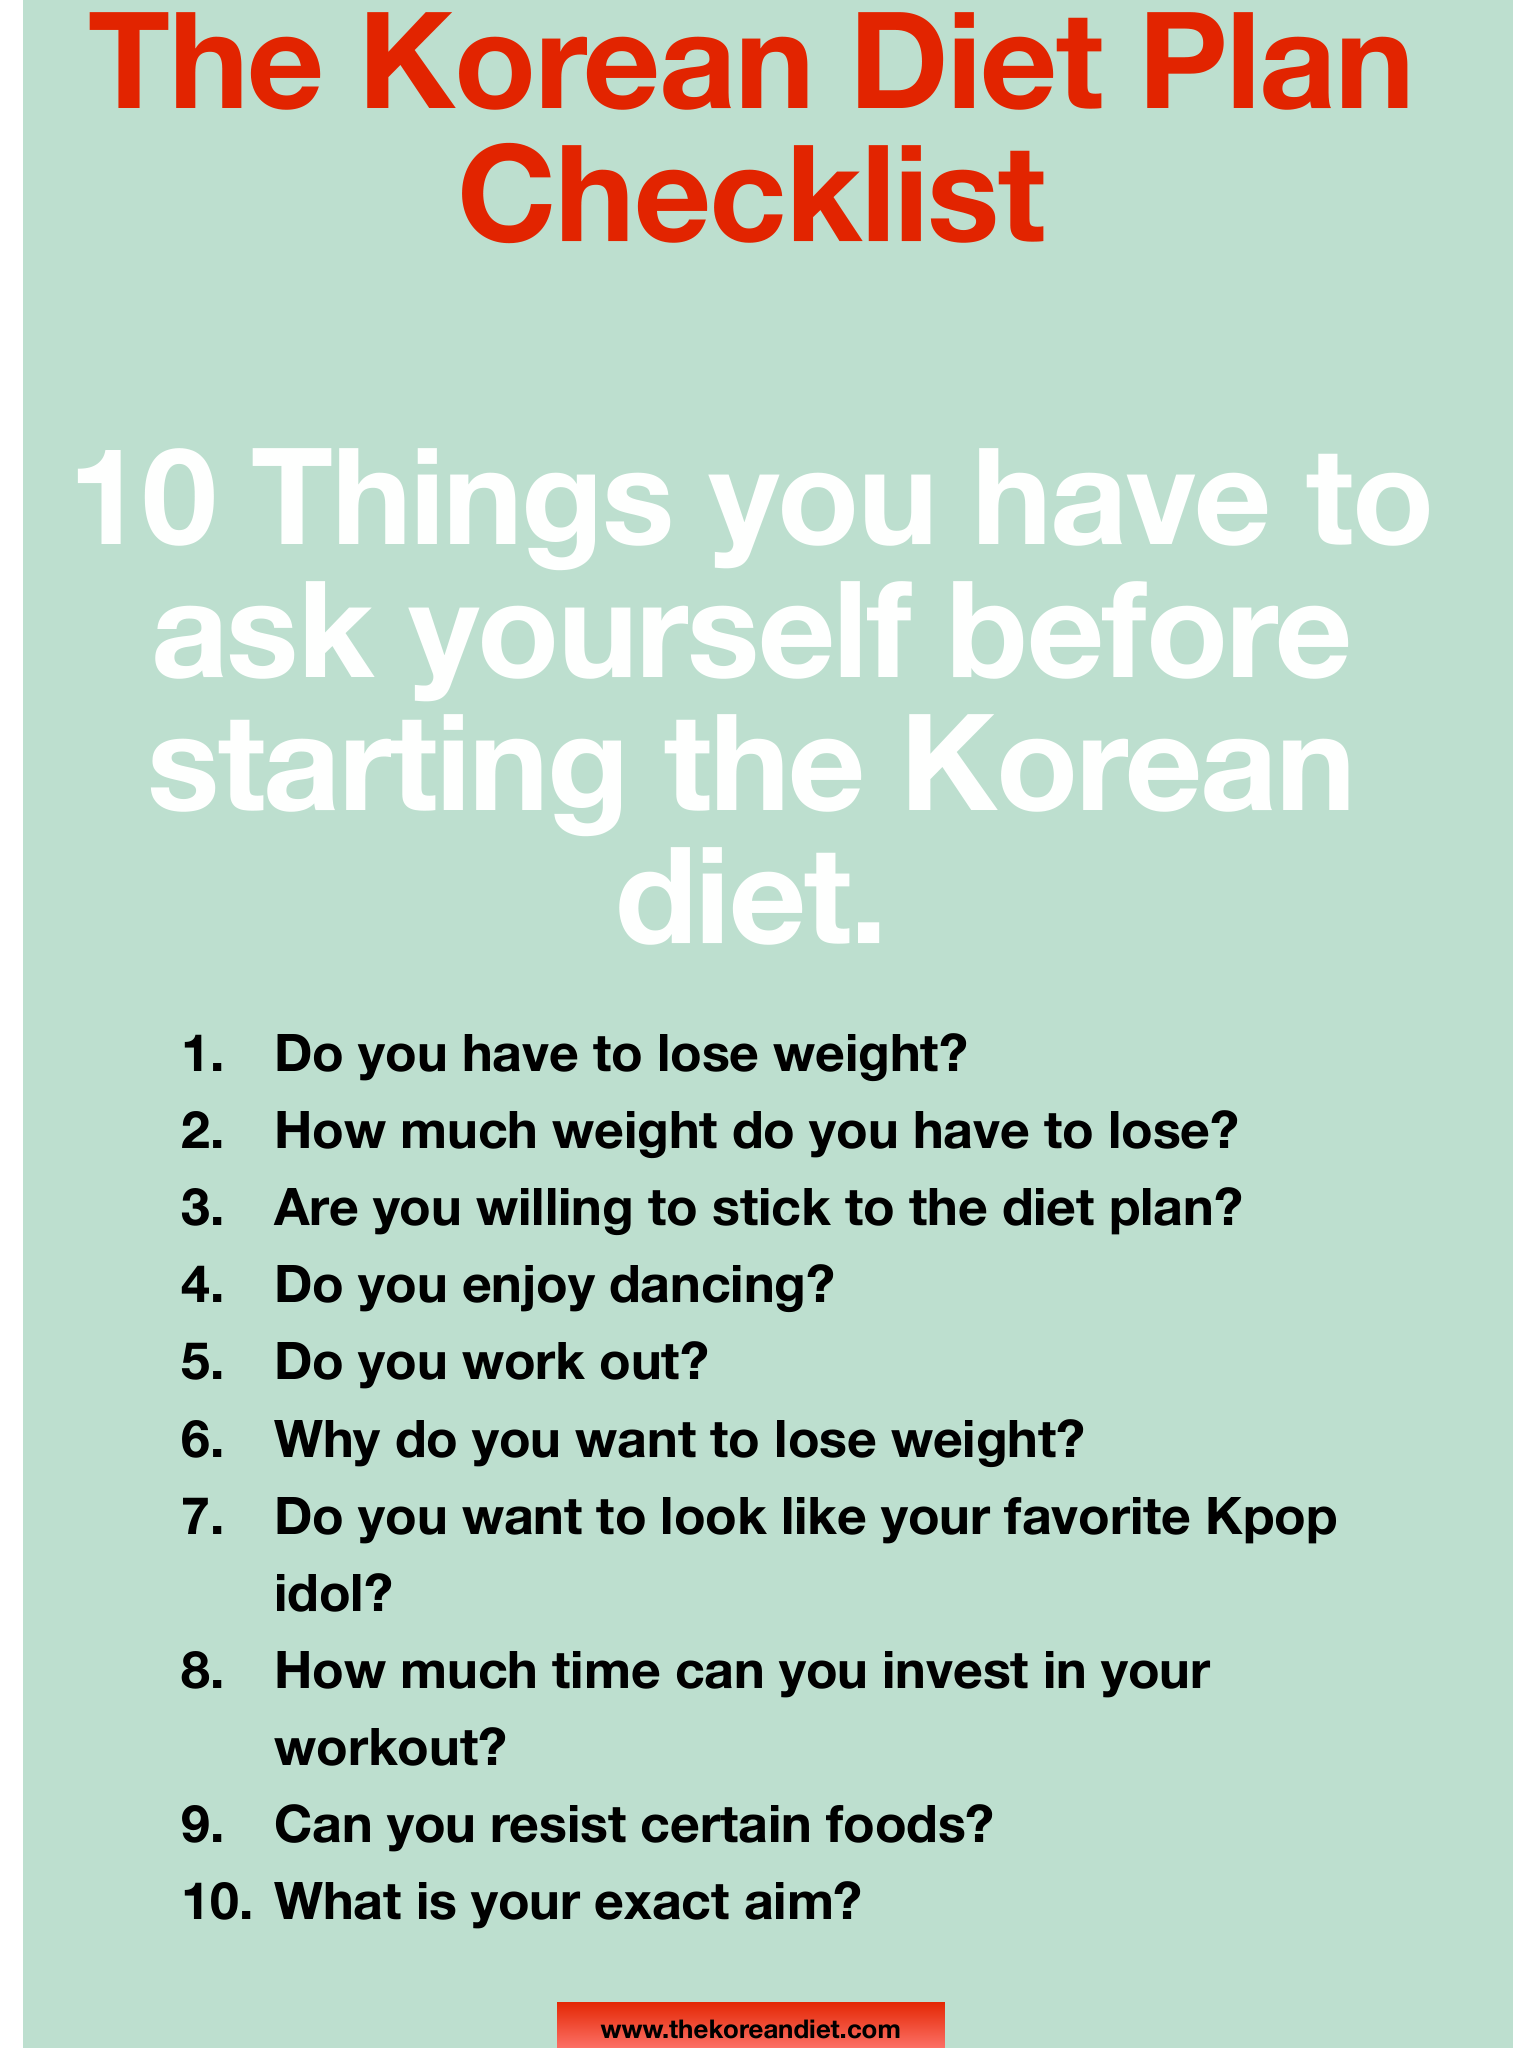 Korean Diet Plan Checklist - The Korean Diet